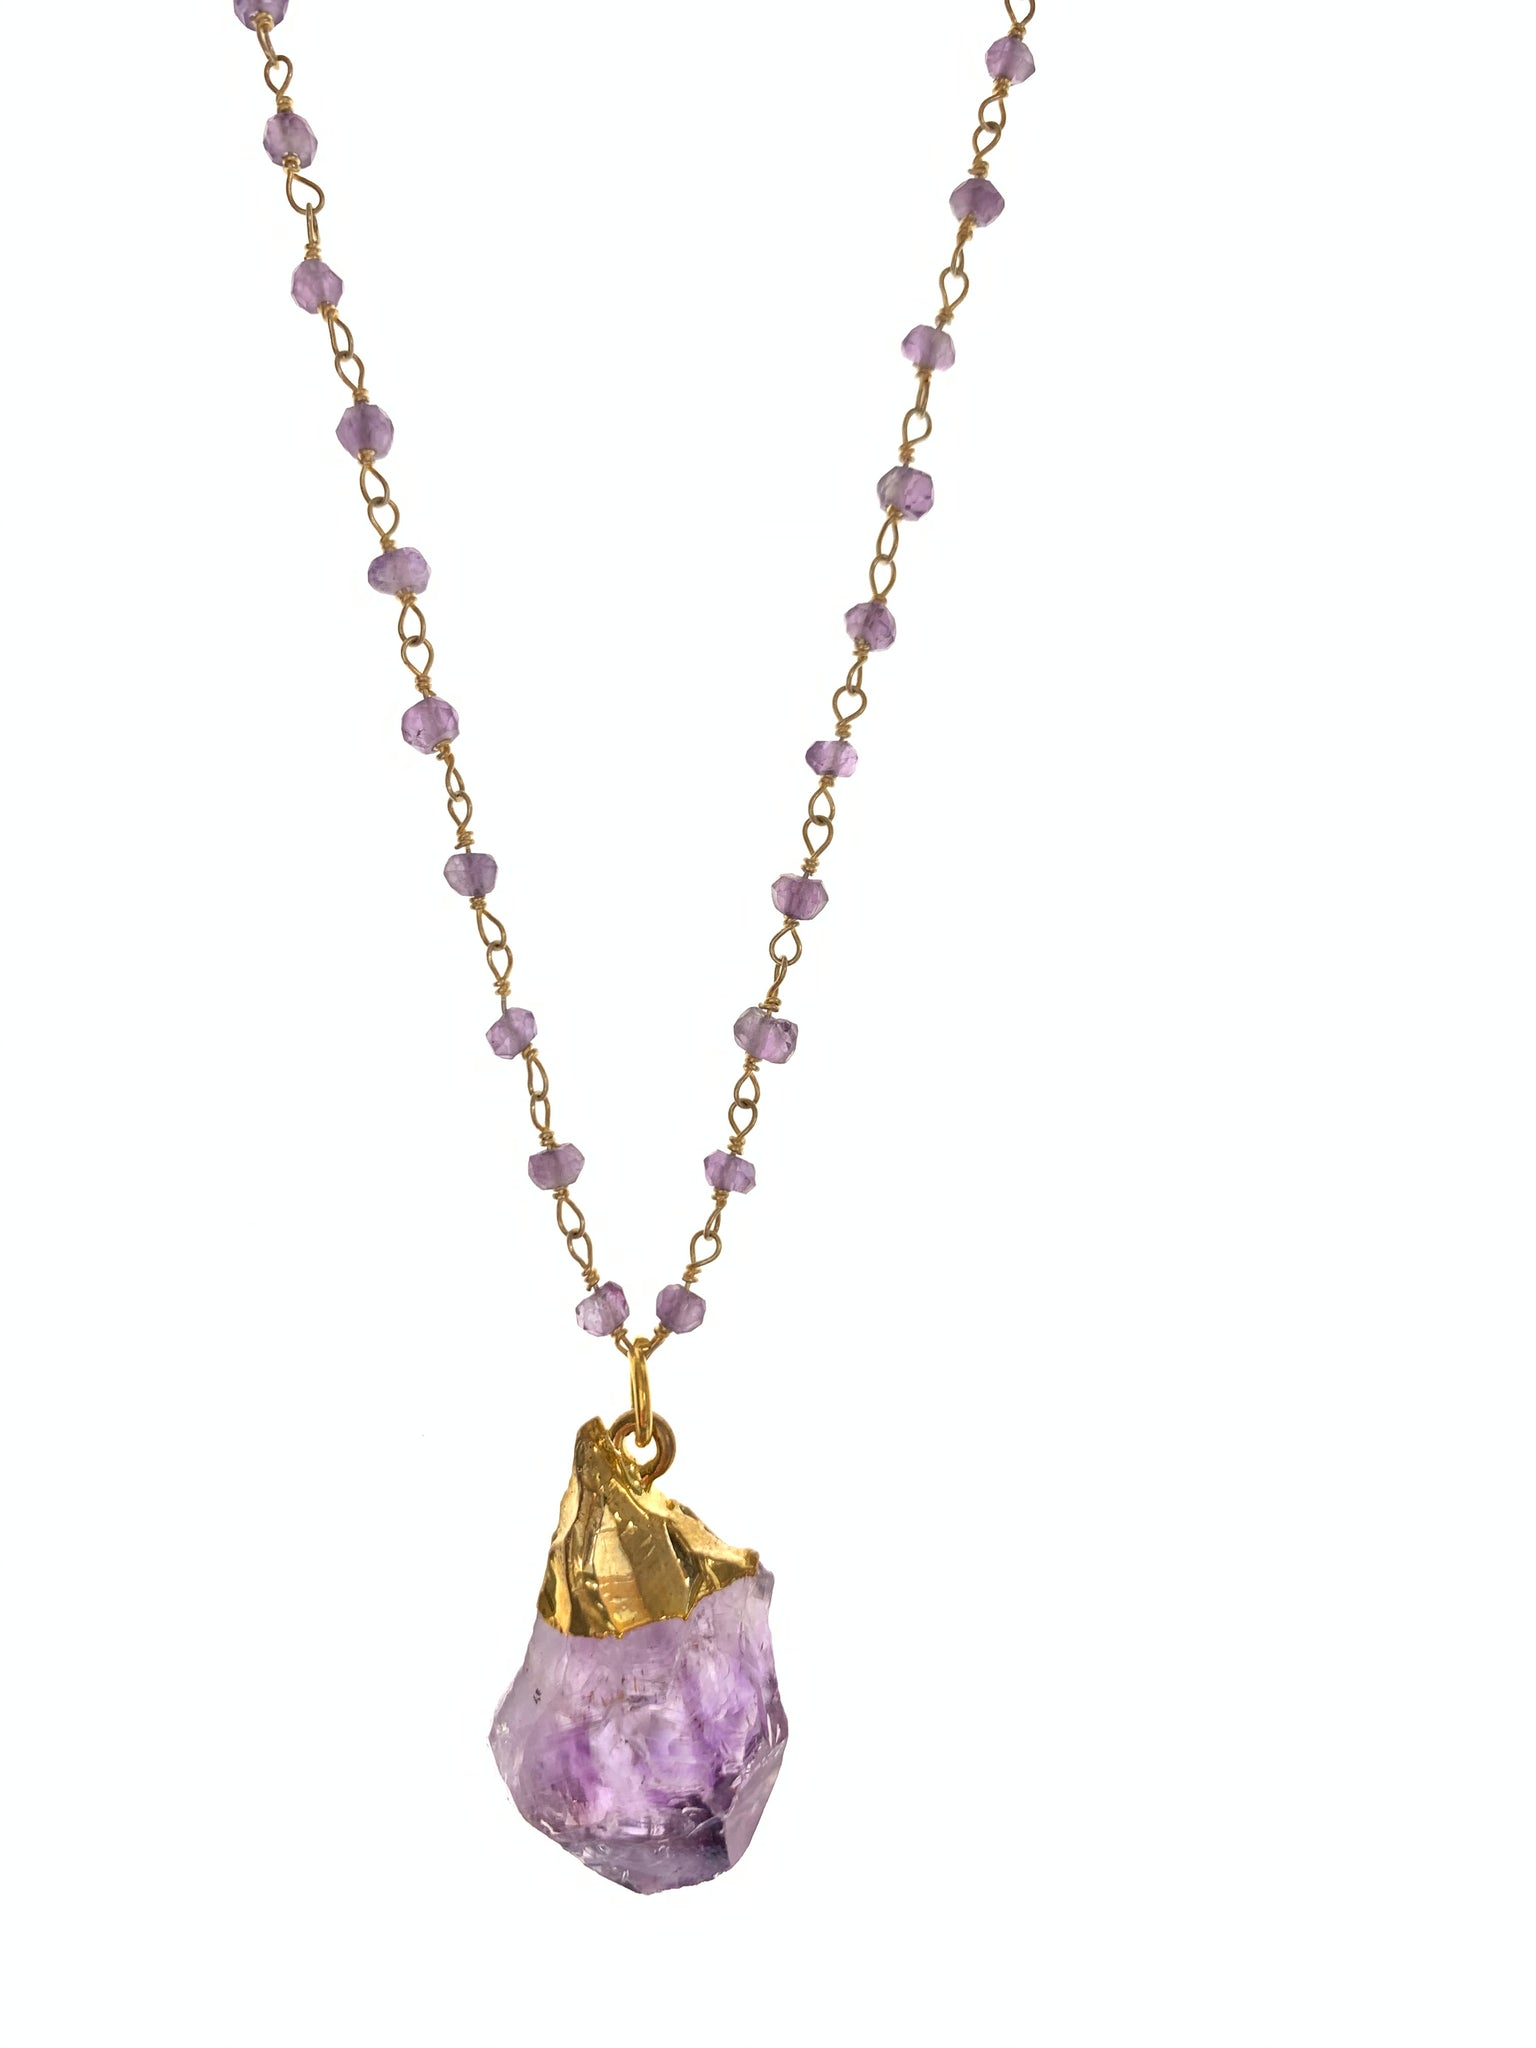 Dainty necklace with amethyst pendant